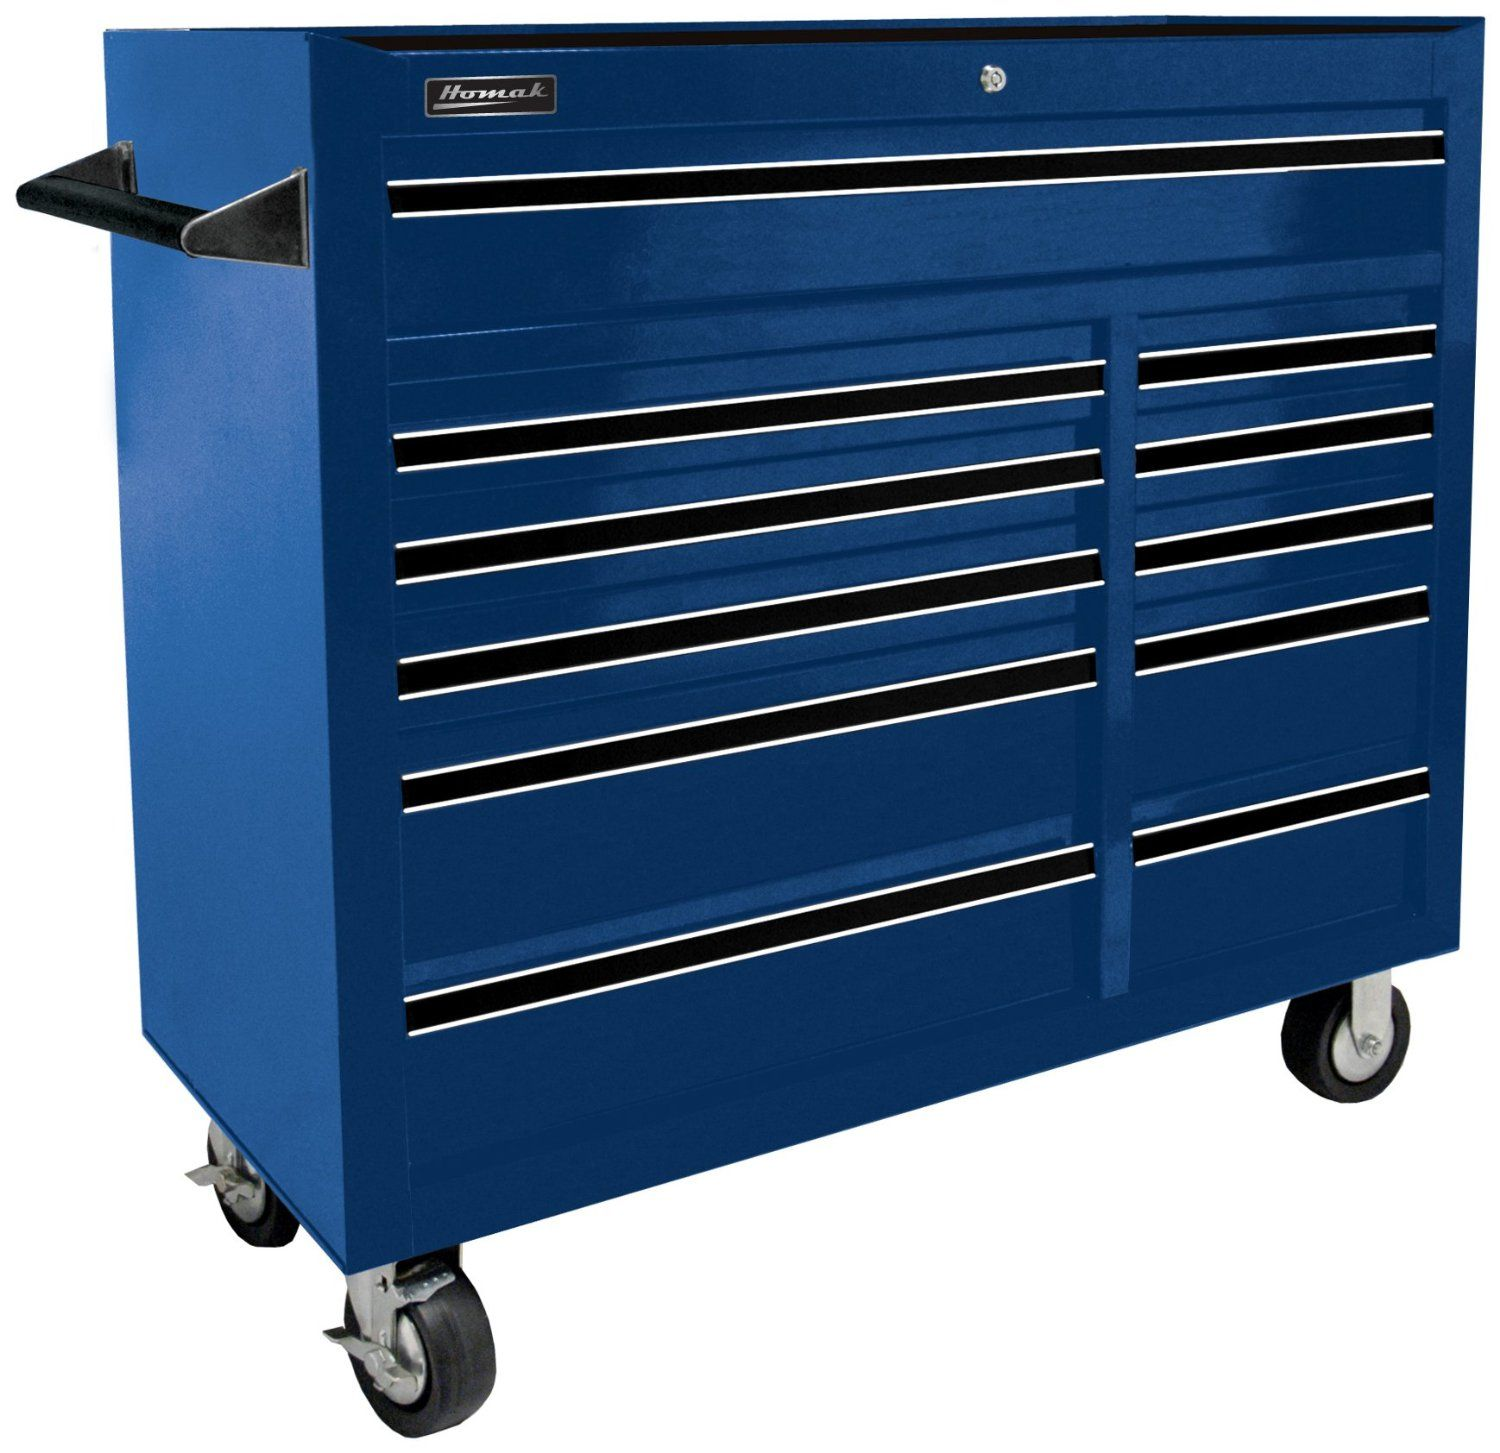 Nothing is better than having a place to store all of your tools. This looks like a really cool tool storage chest.